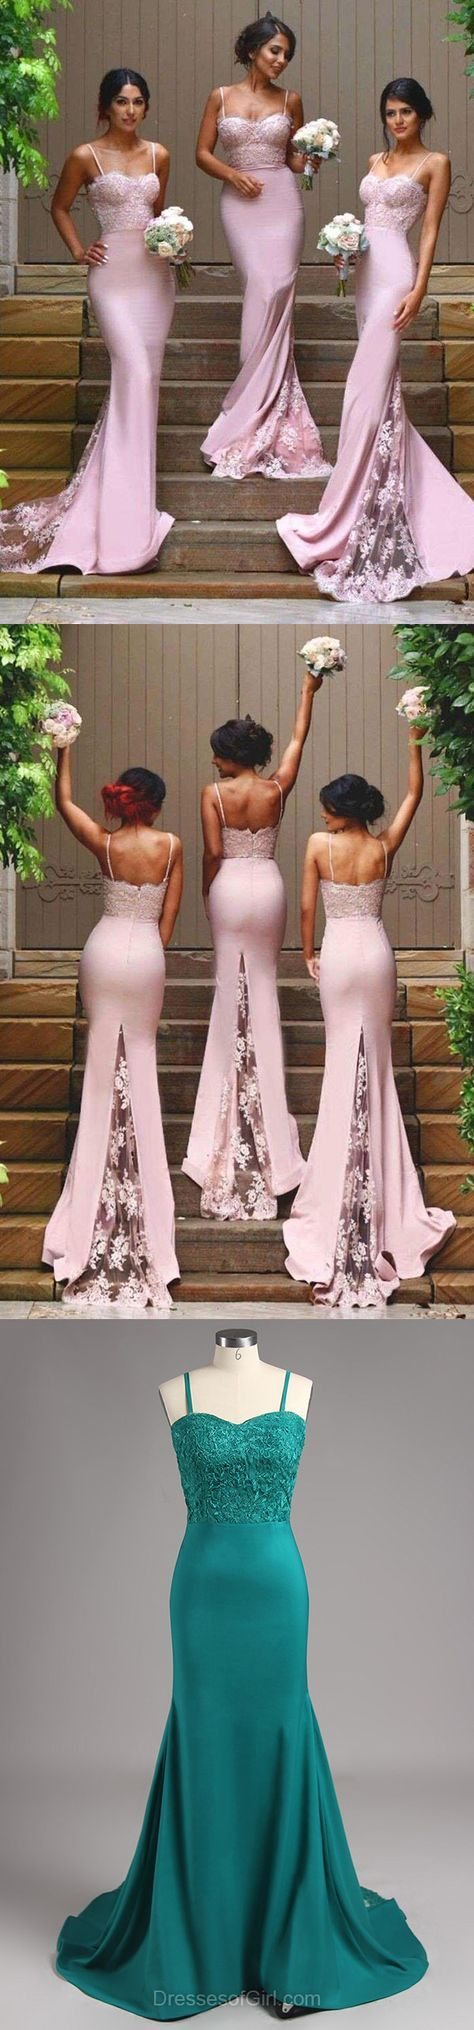 Pink Prom Dress, Long Prom Dresses, Sexy Evening Gowns, Mermaid Party Dresses, Satin Formal Dresses